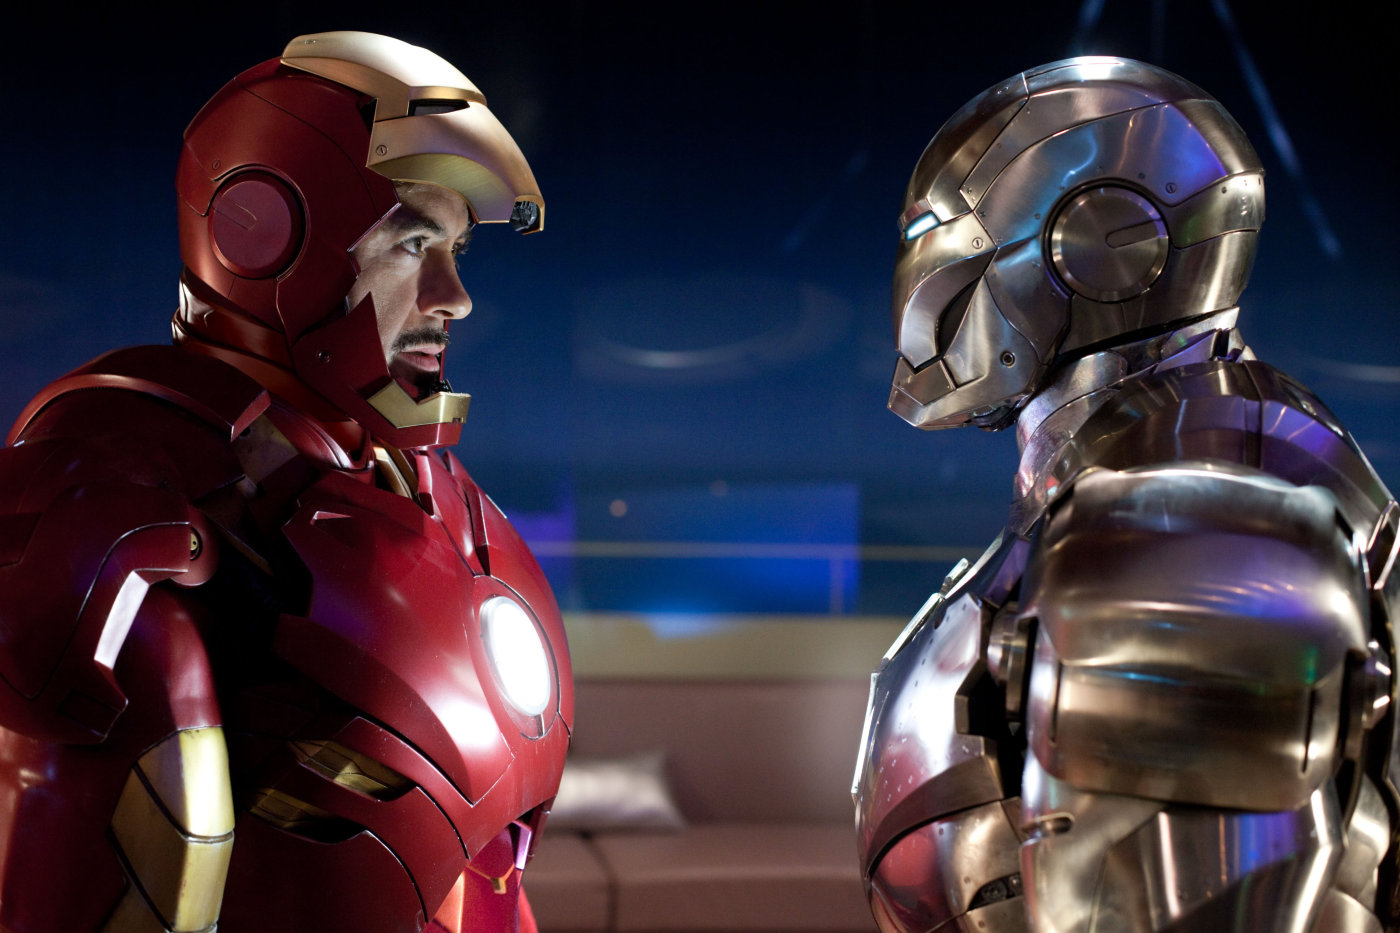 New on DVD – September 28, 2010 – Iron Man 2 and Get Him to the Greek